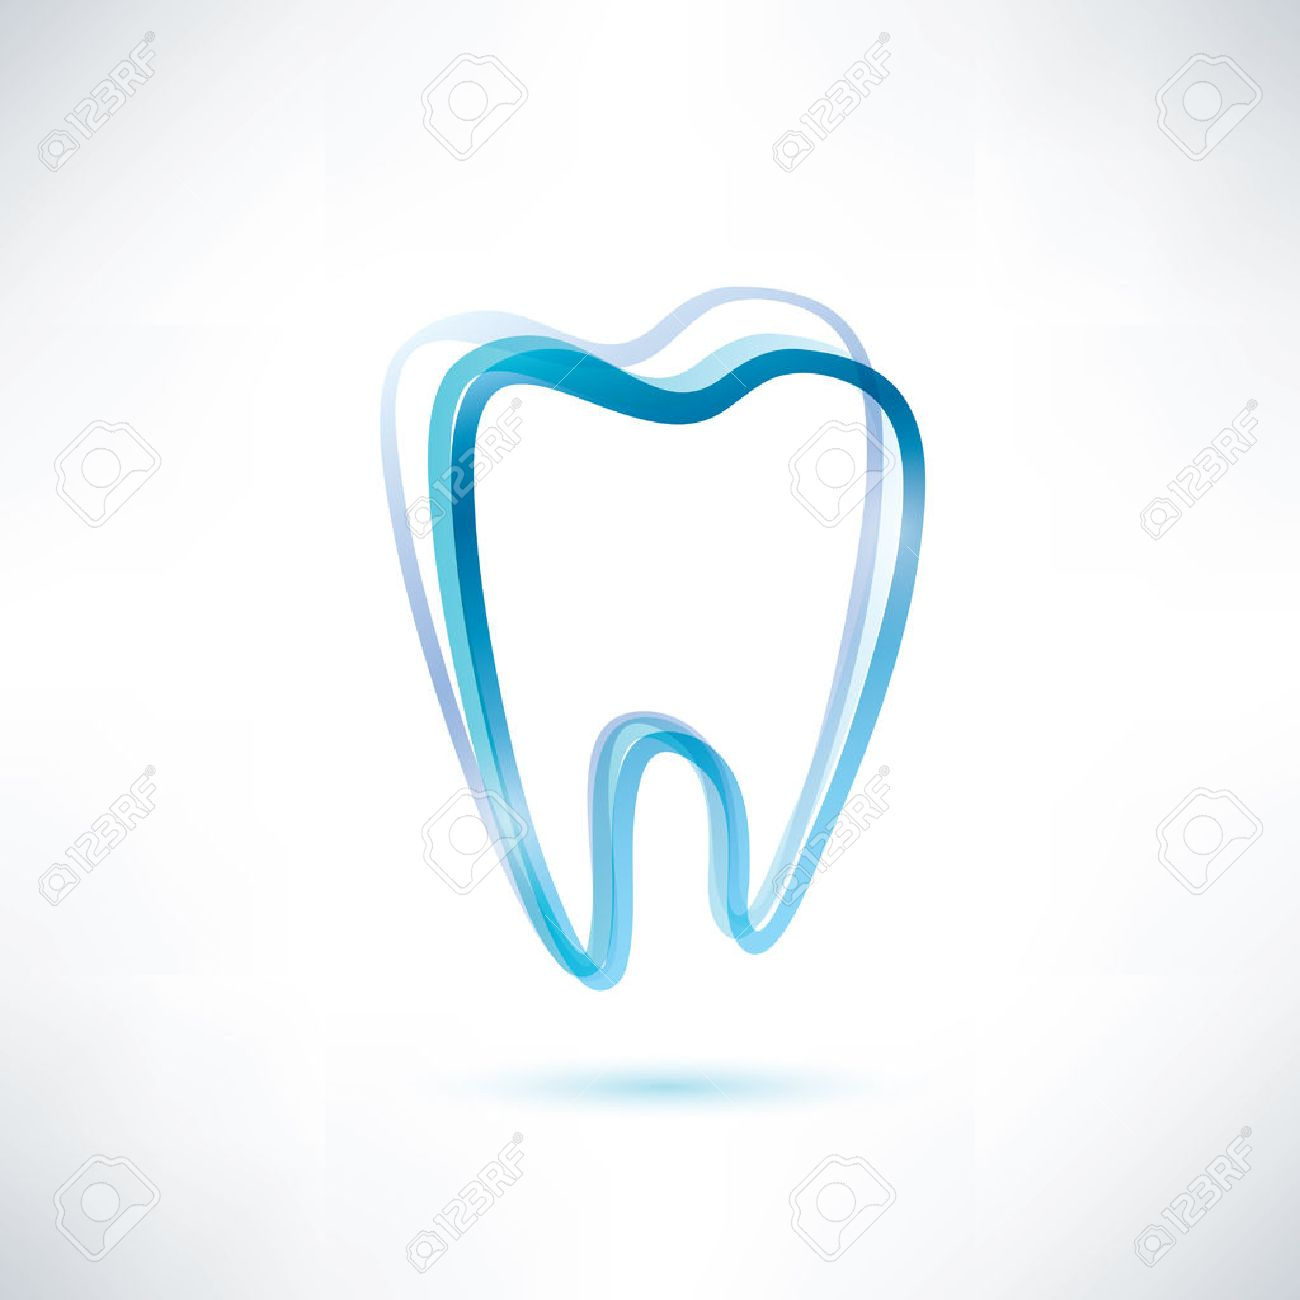 tooth symbol royalty free cliparts vectors and stock illustration